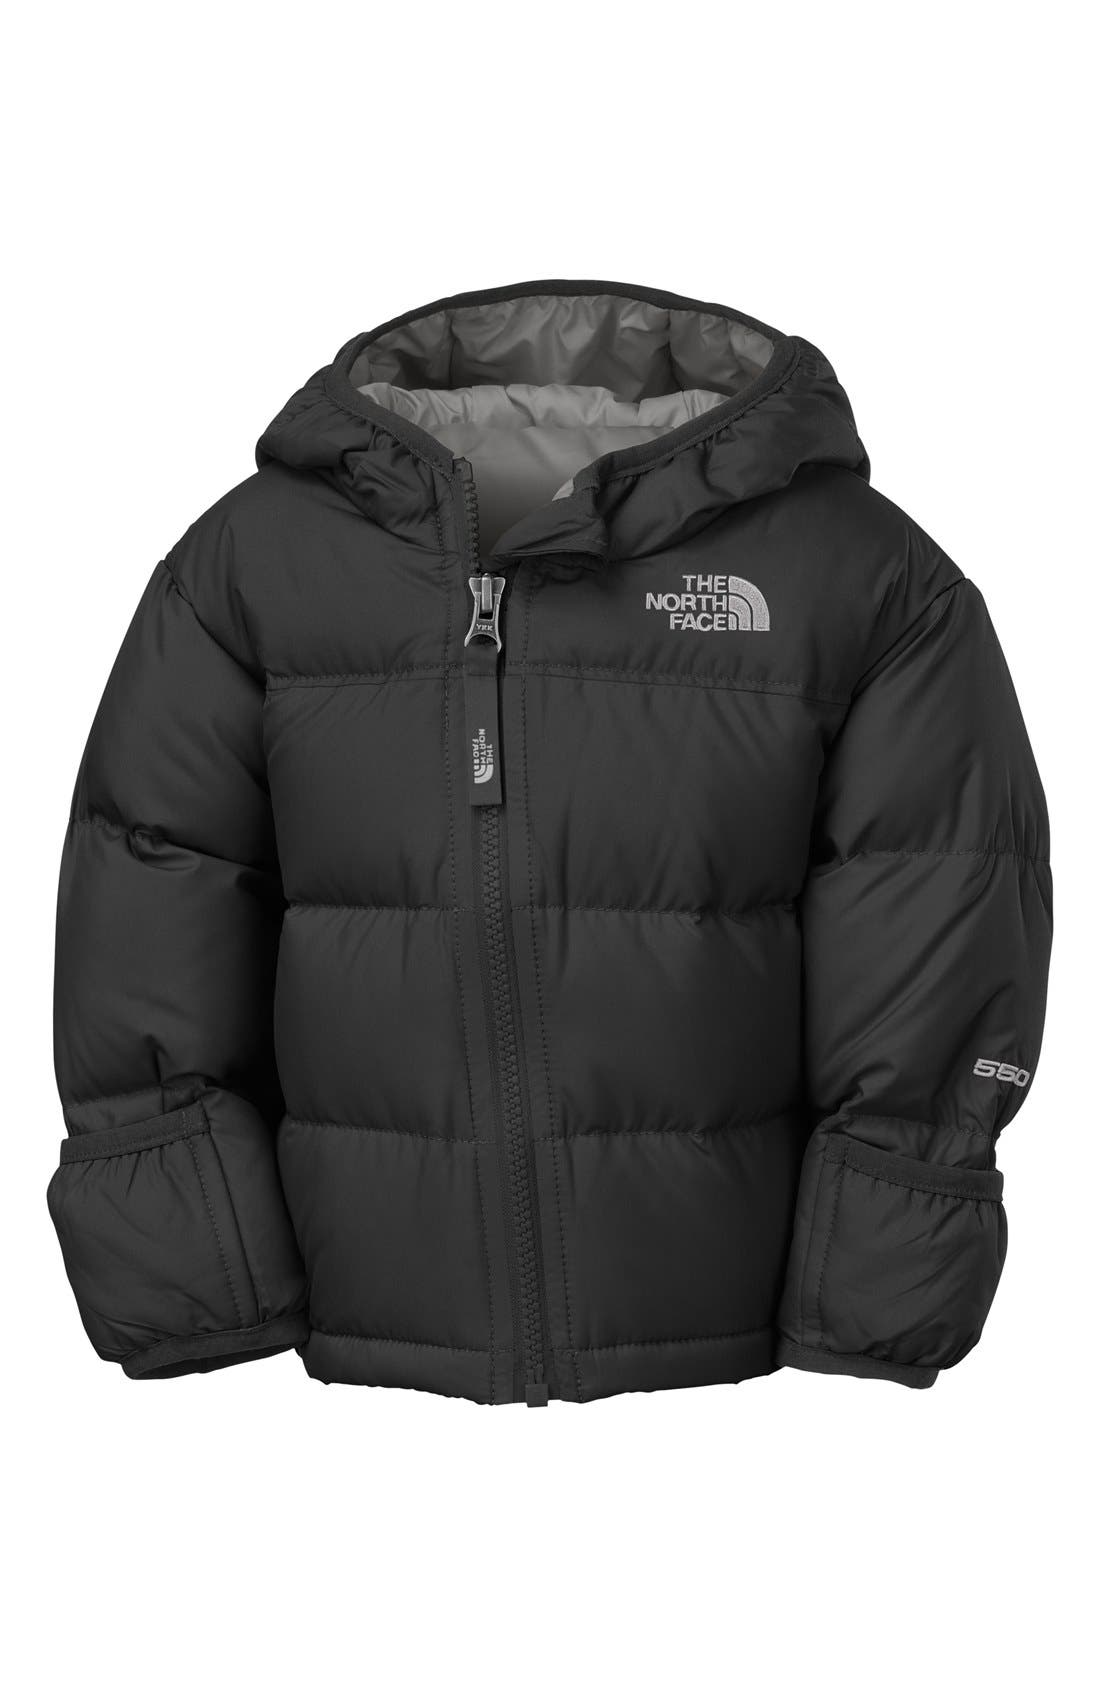 Alternate Image 1 Selected - The North Face 'Nuptse' Hooded Down Jacket (Baby Boys)